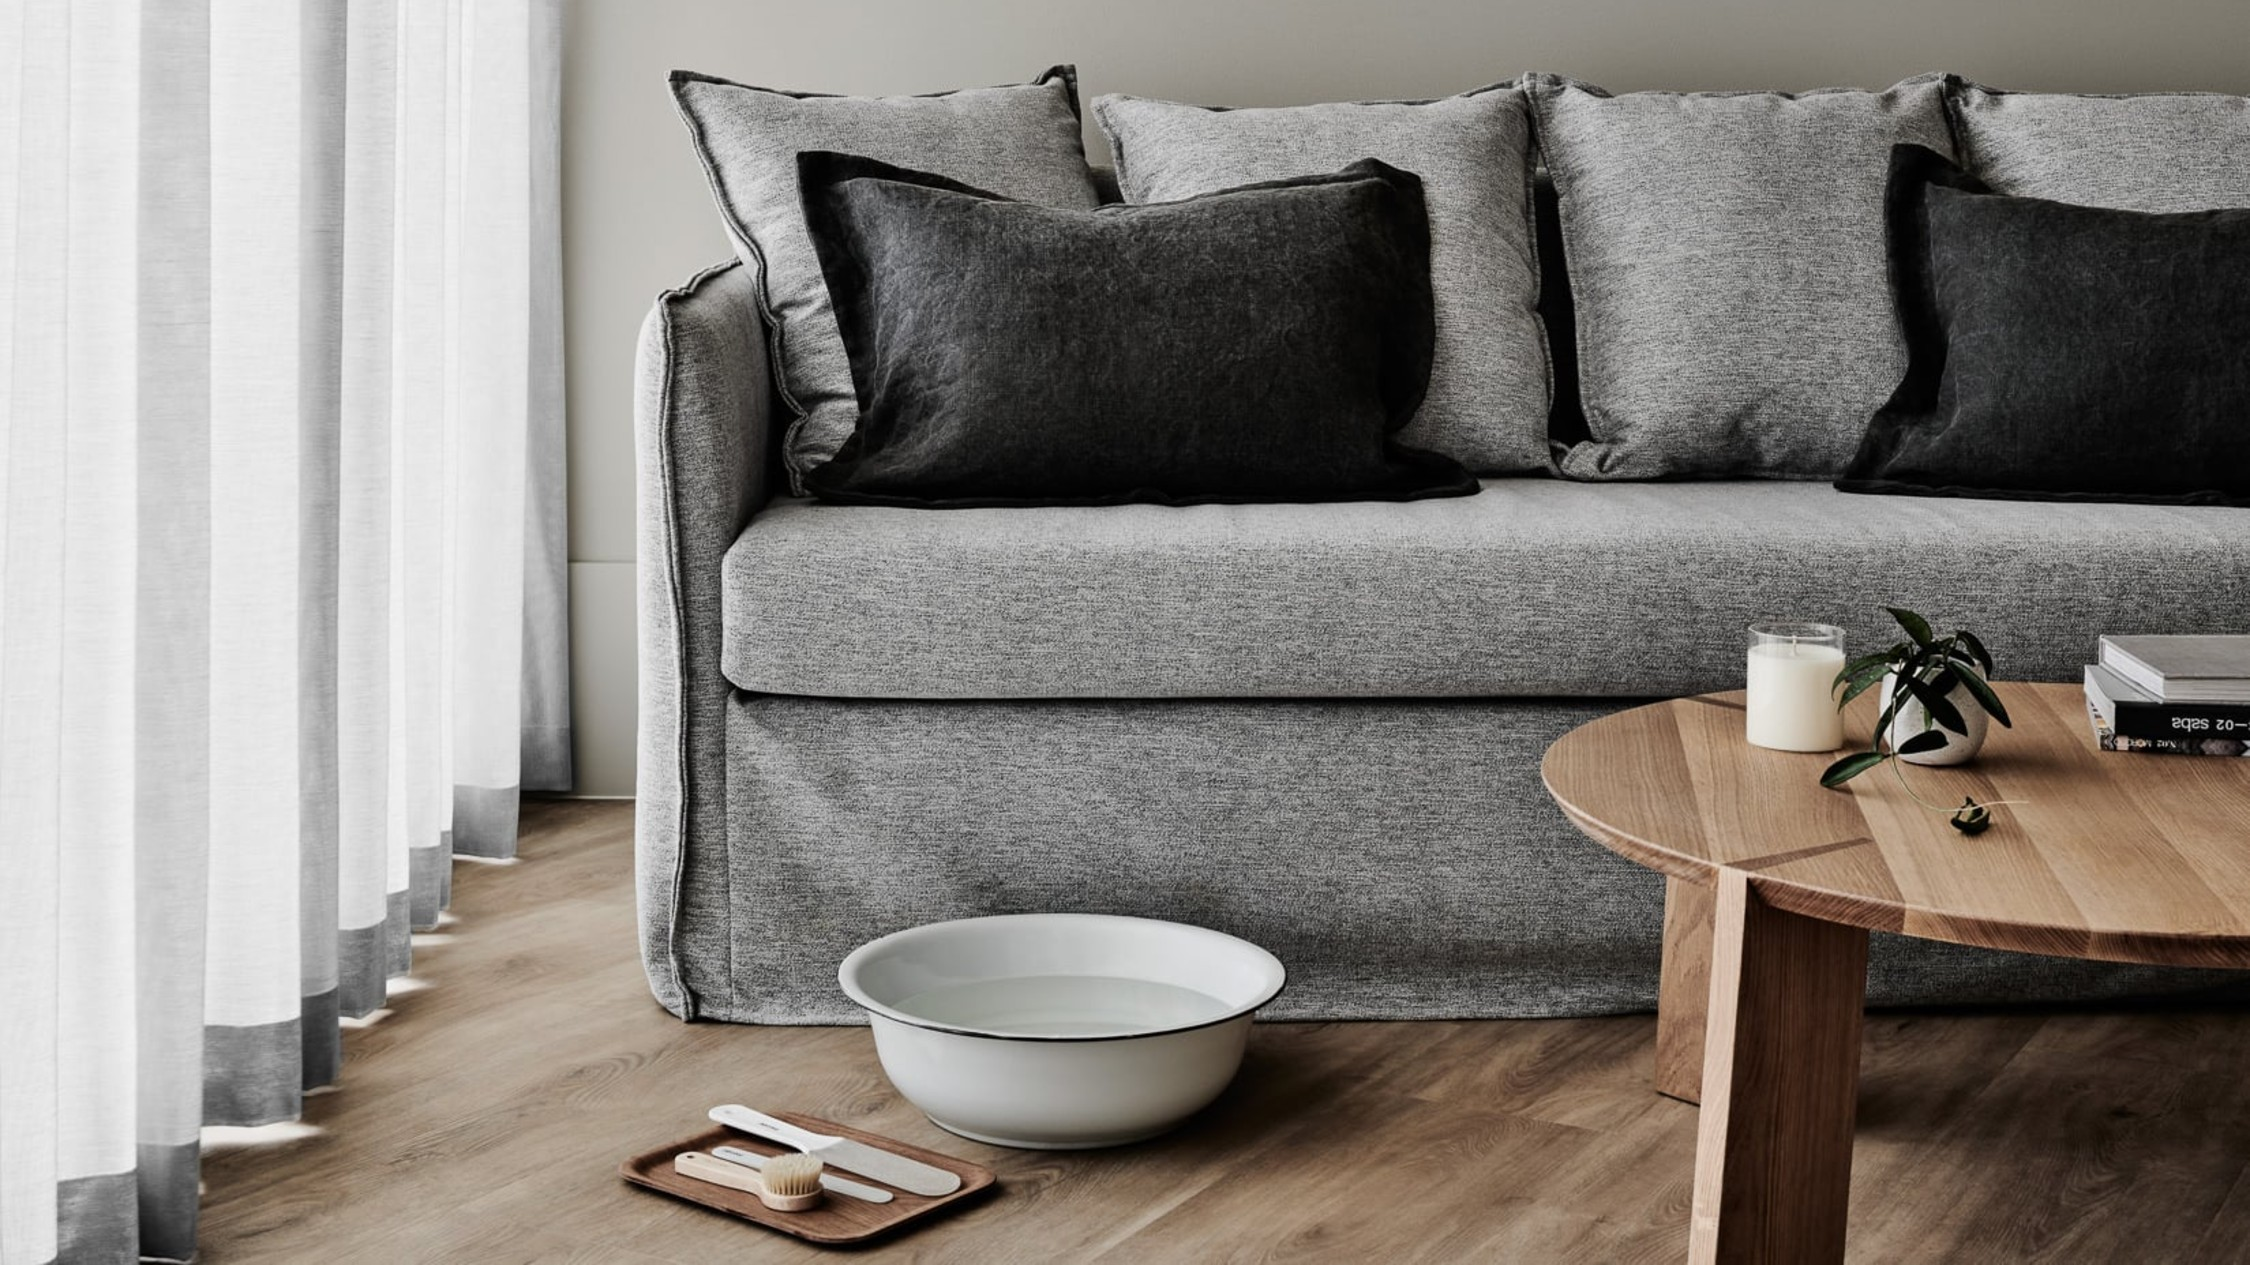 A large bowl and pedicure supplied sit infront of a grey couch.